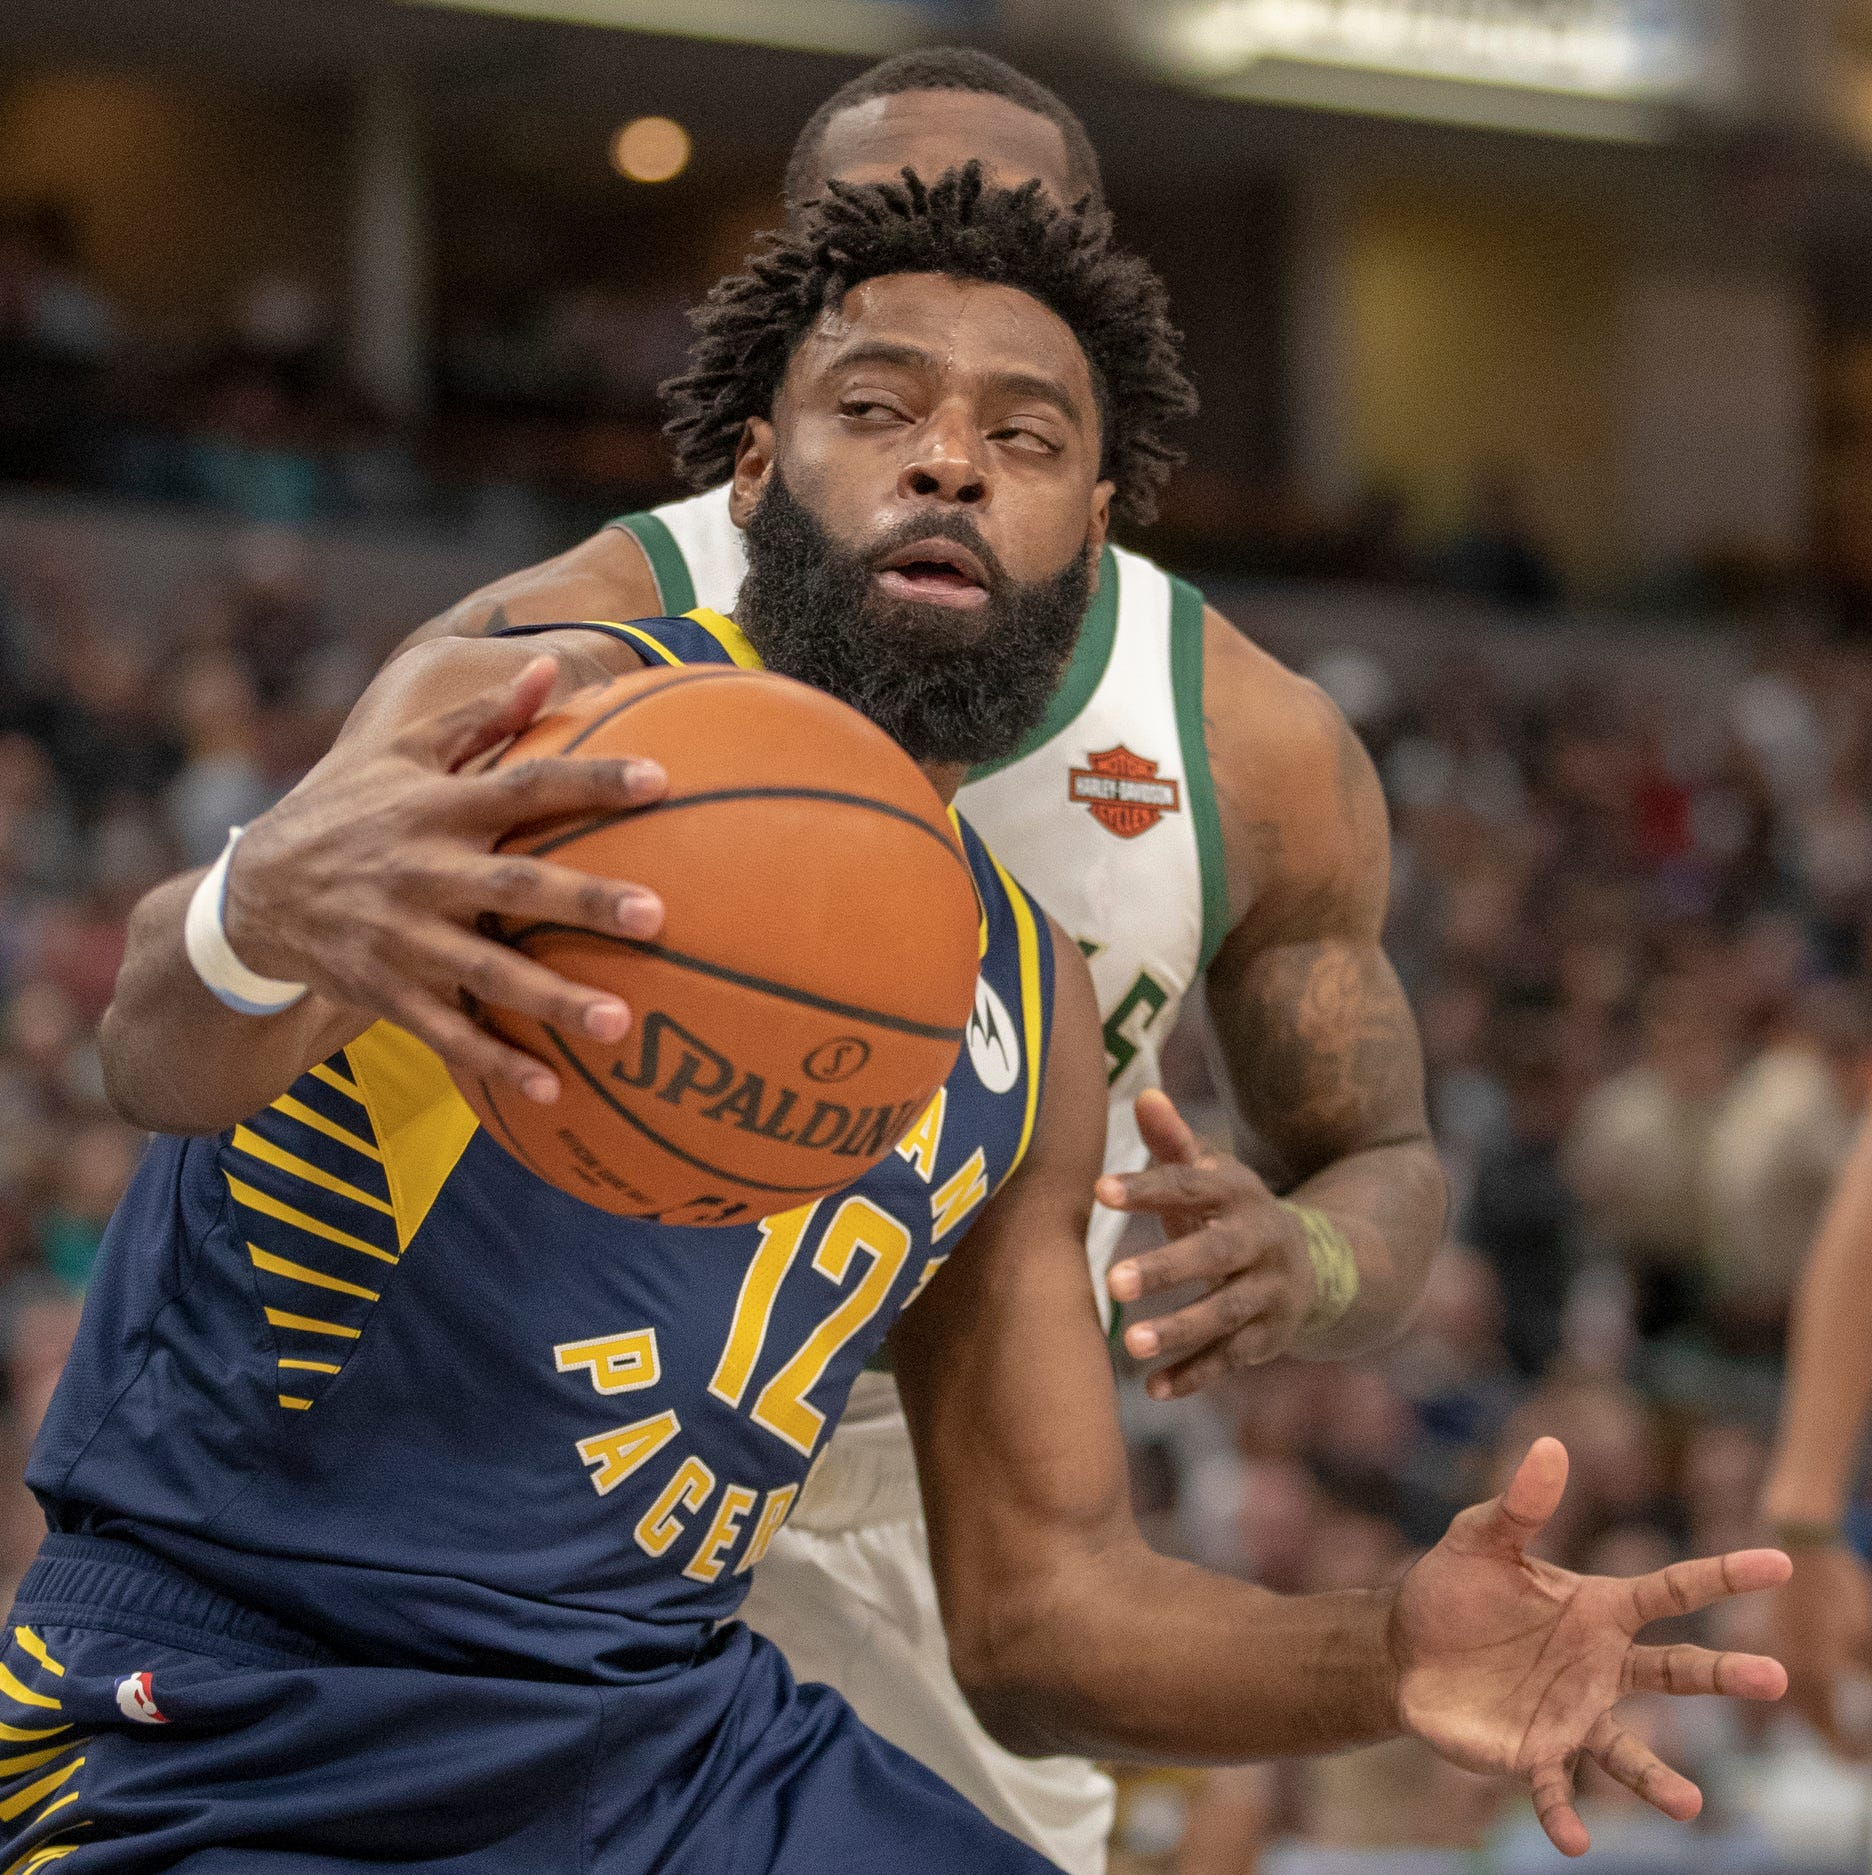 Pacers Tyreke Evans responds after knee injection during All-Star break